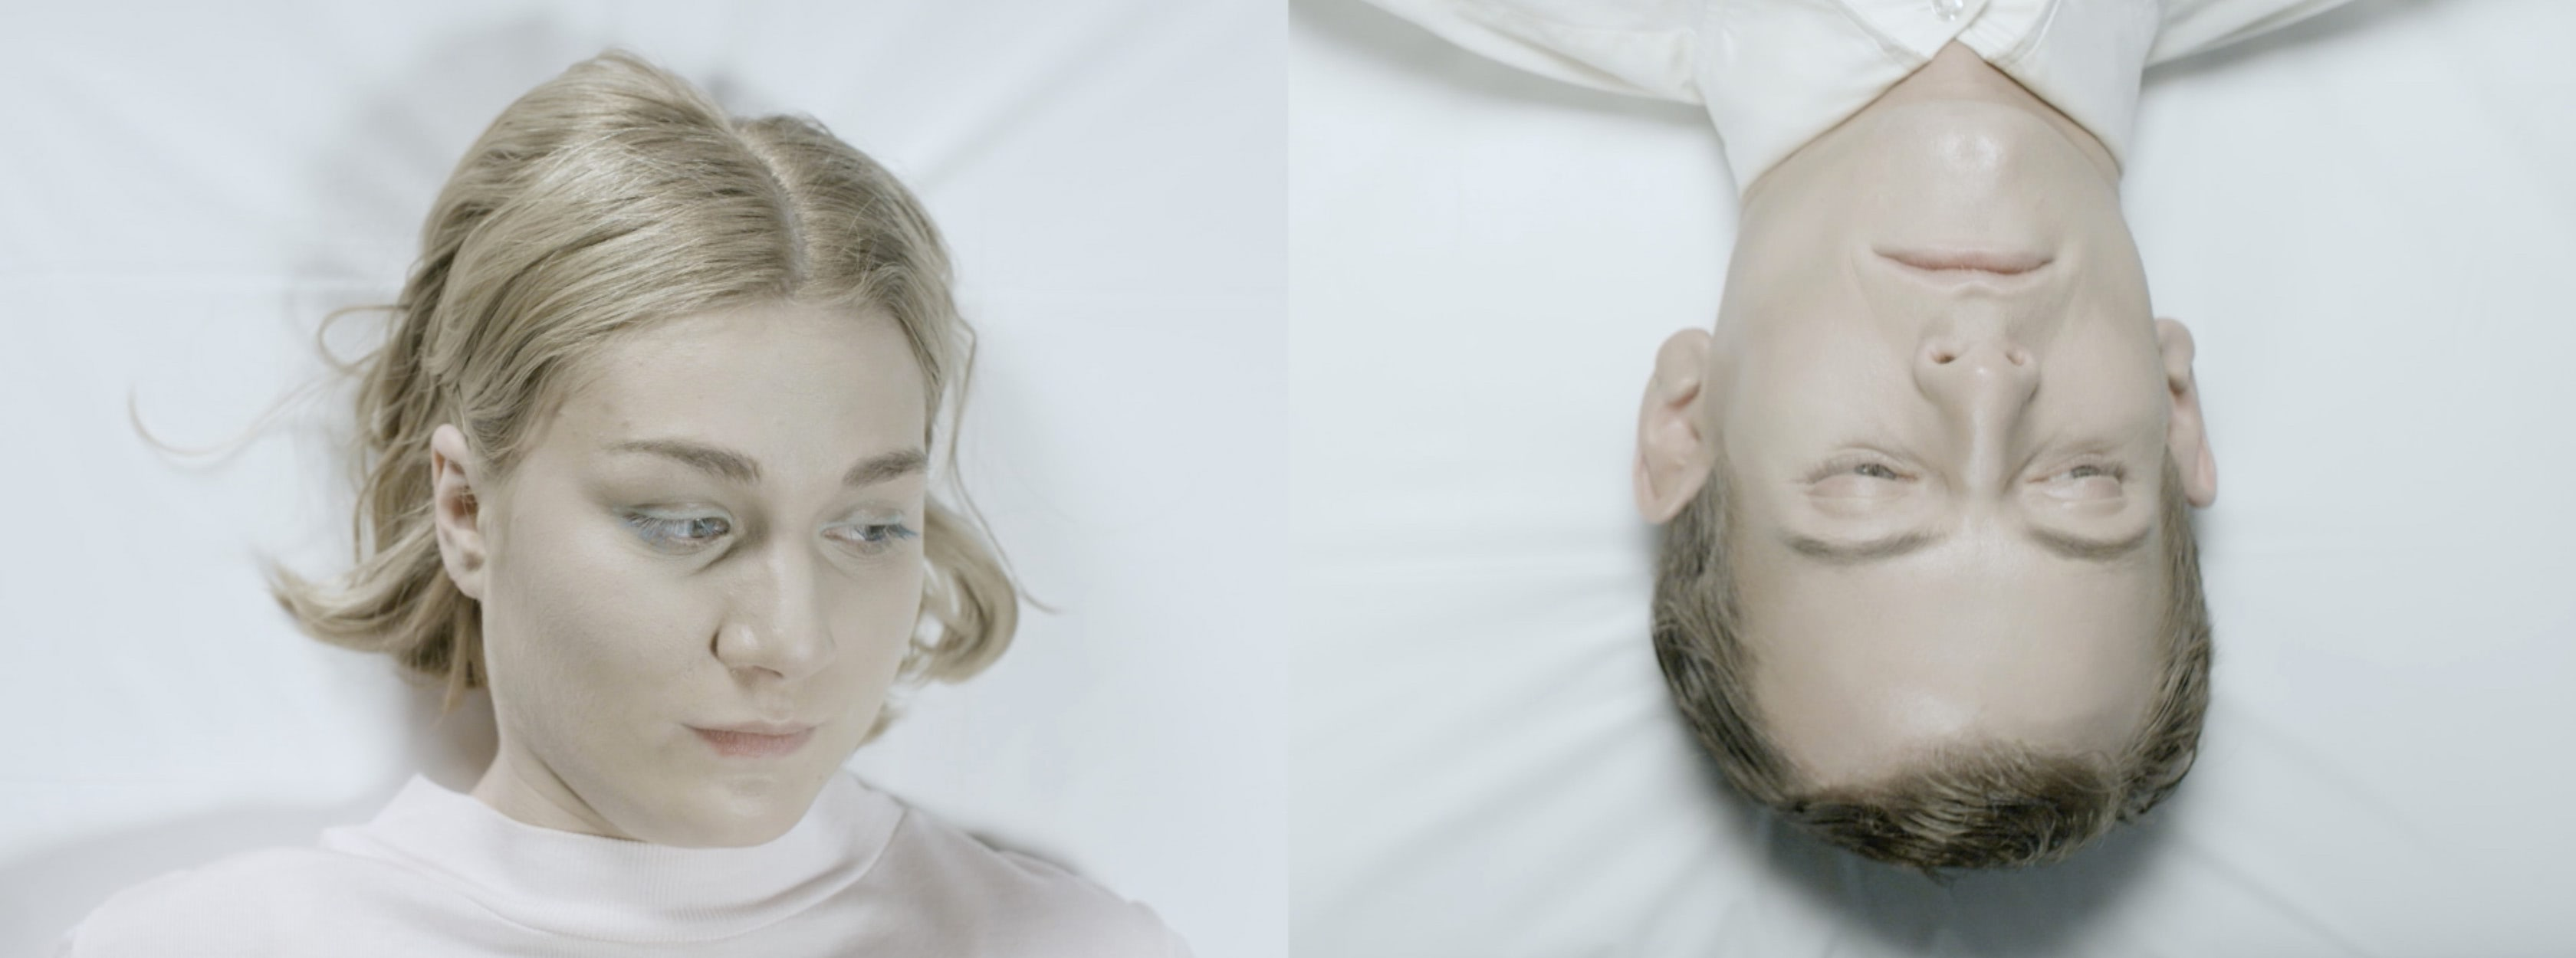 A split frame of a young man and woman lying on a white mattress.